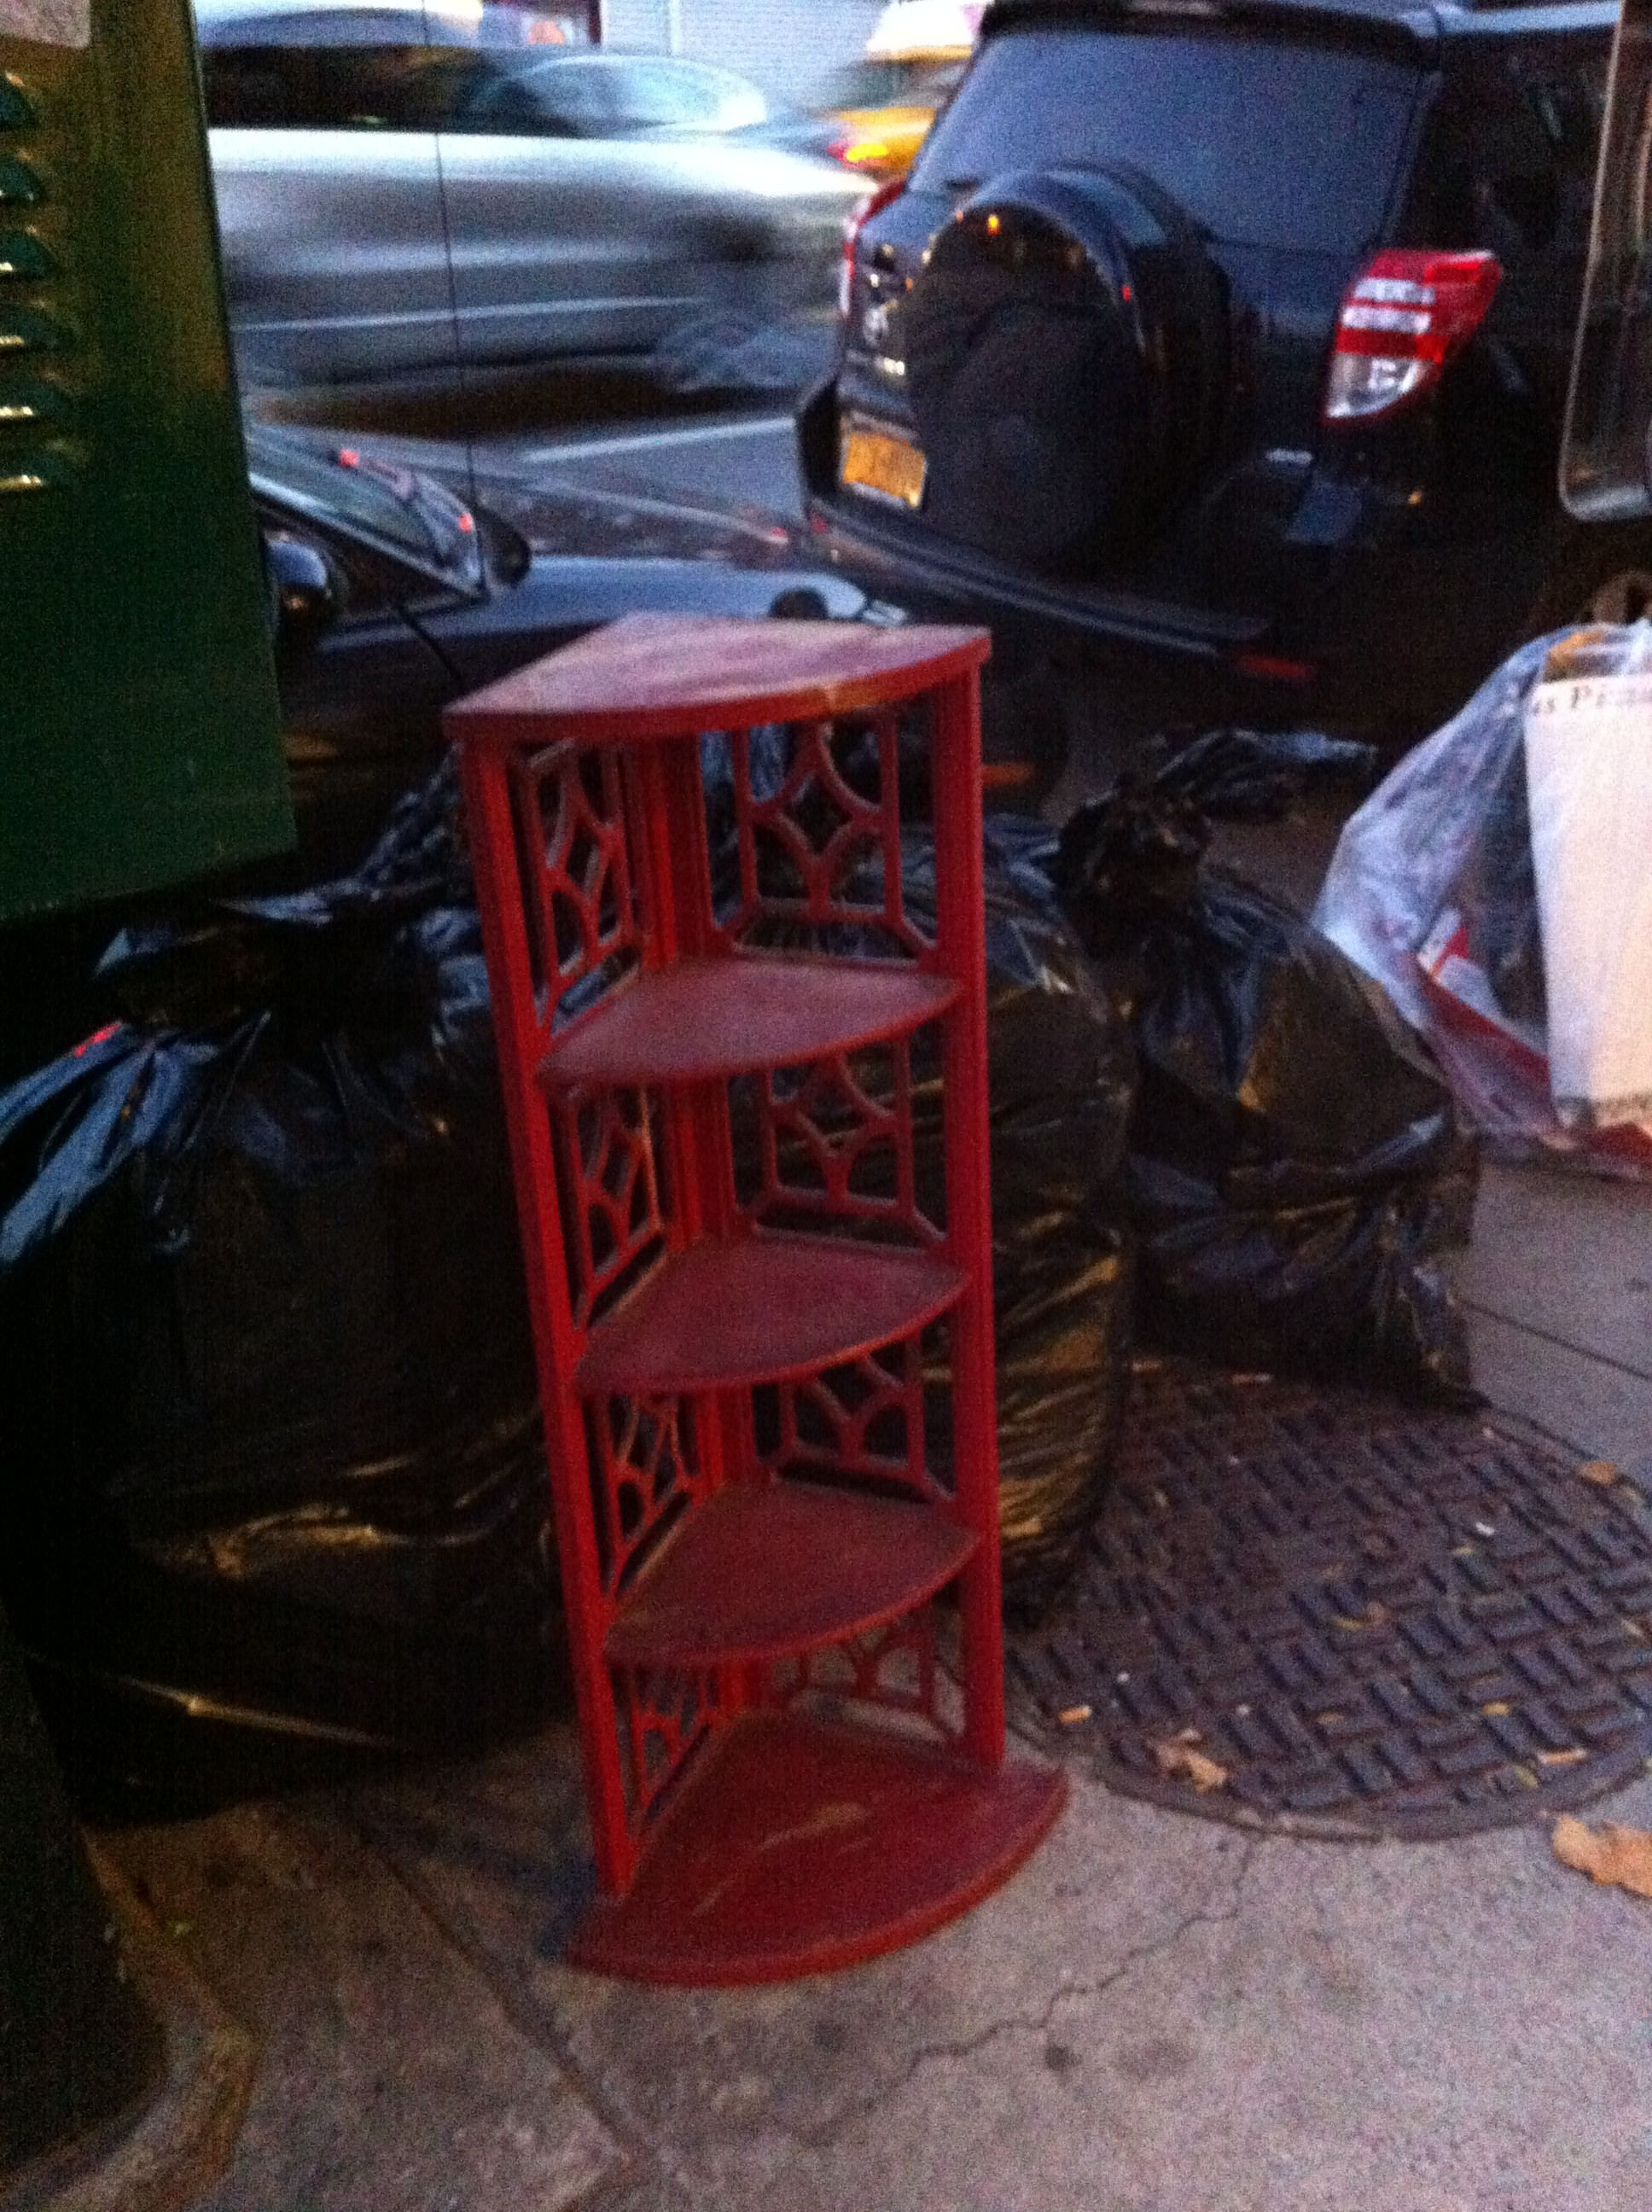 A pic of a red corner shelf unit off NYC street